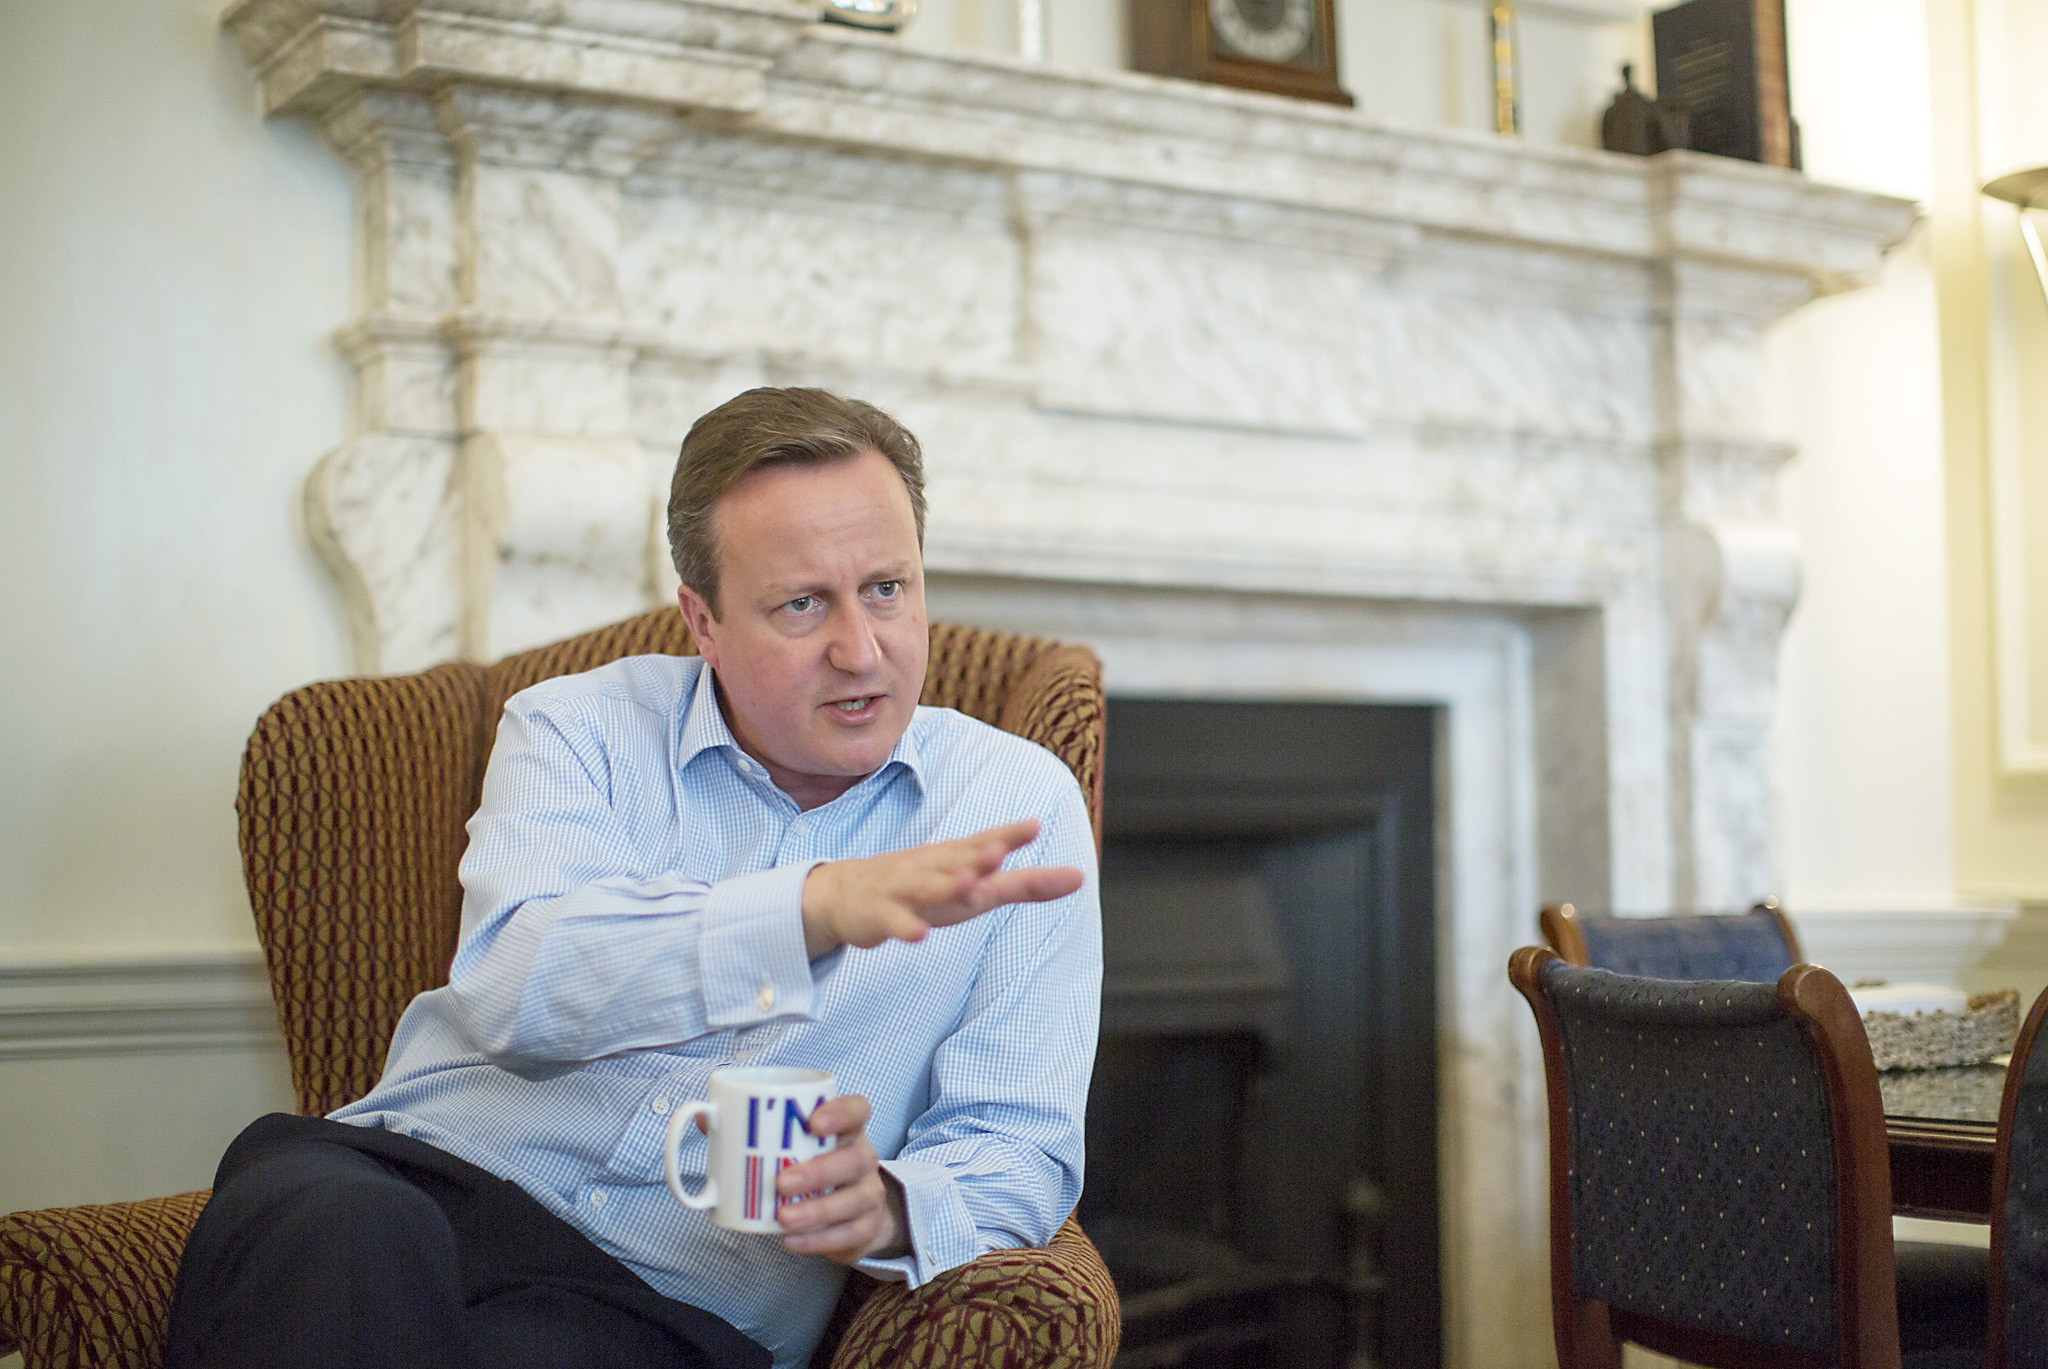 British prime minister, David Cameron, talks to the FT from downing street ahead of the EU referendum on Thursday.